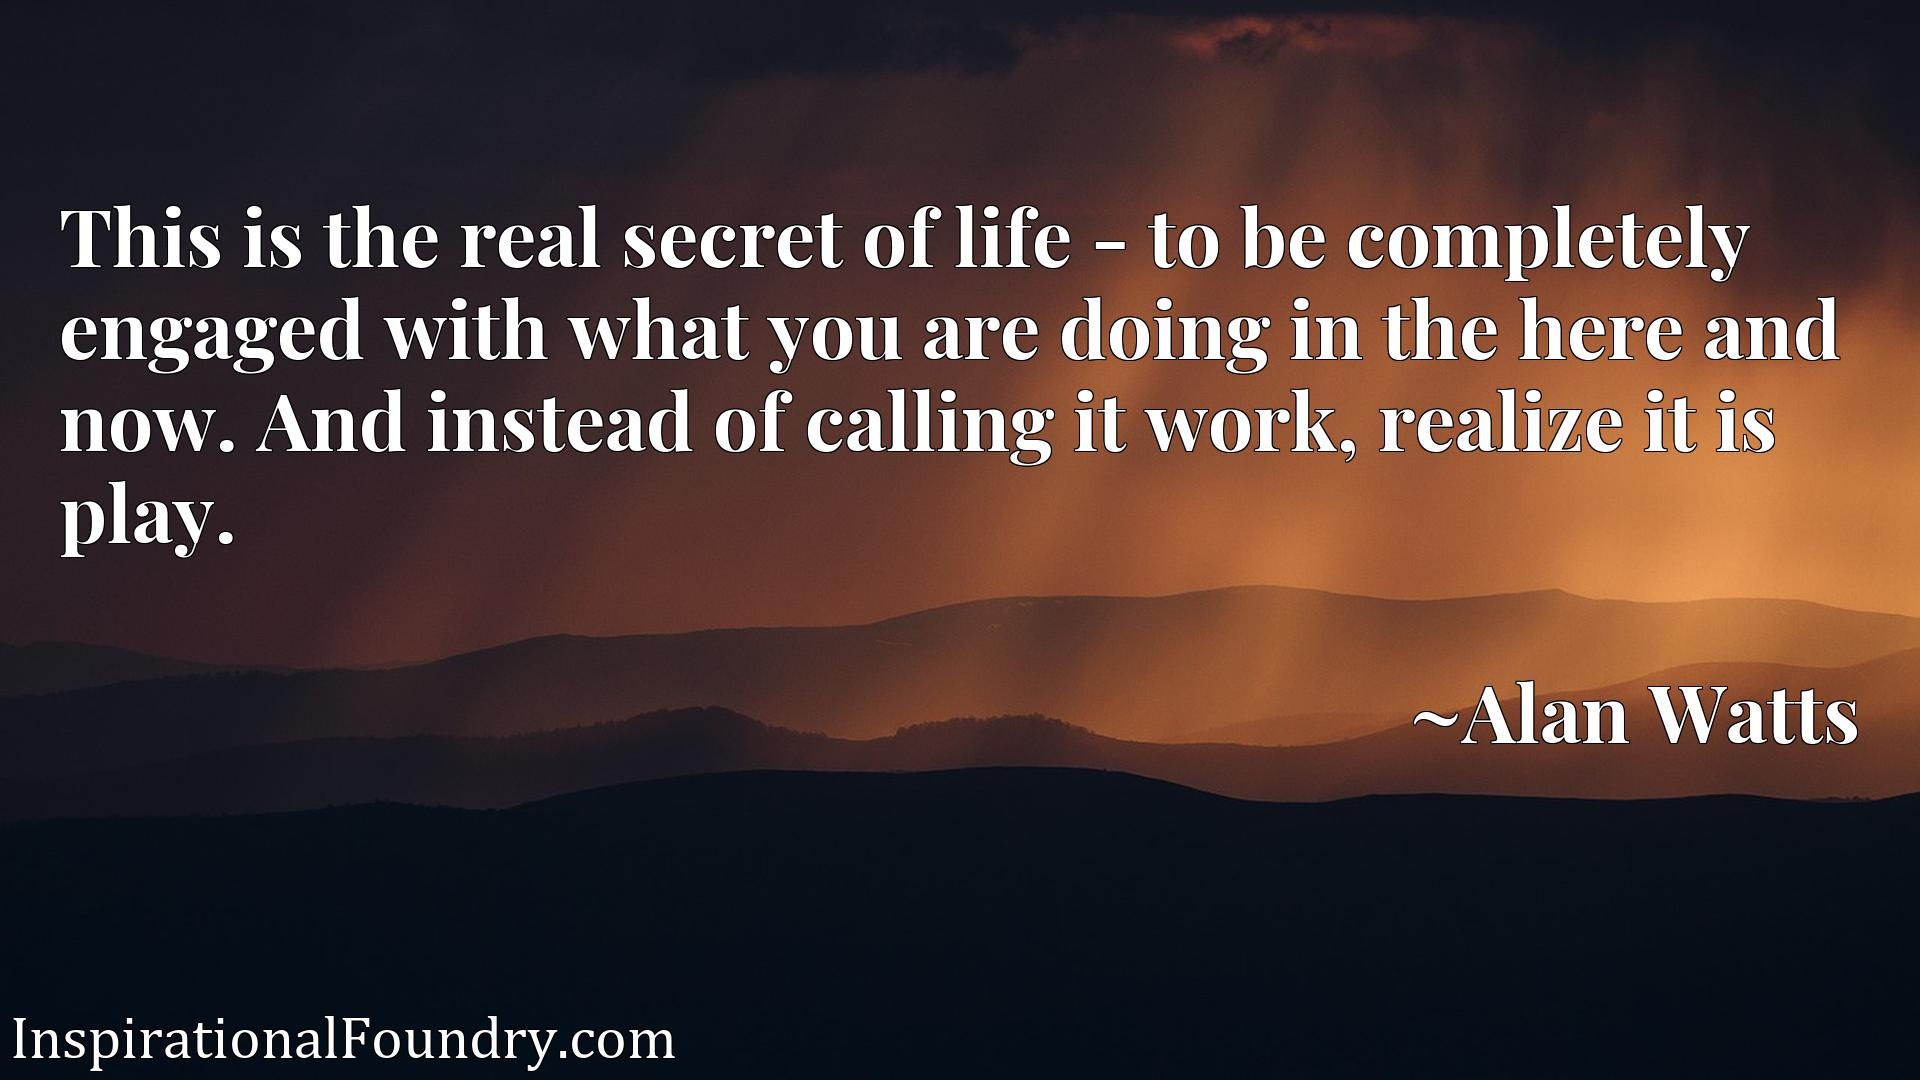 Quote Picture :This is the real secret of life - to be completely engaged with what you are doing in the here and now. And instead of calling it work, realize it is play.